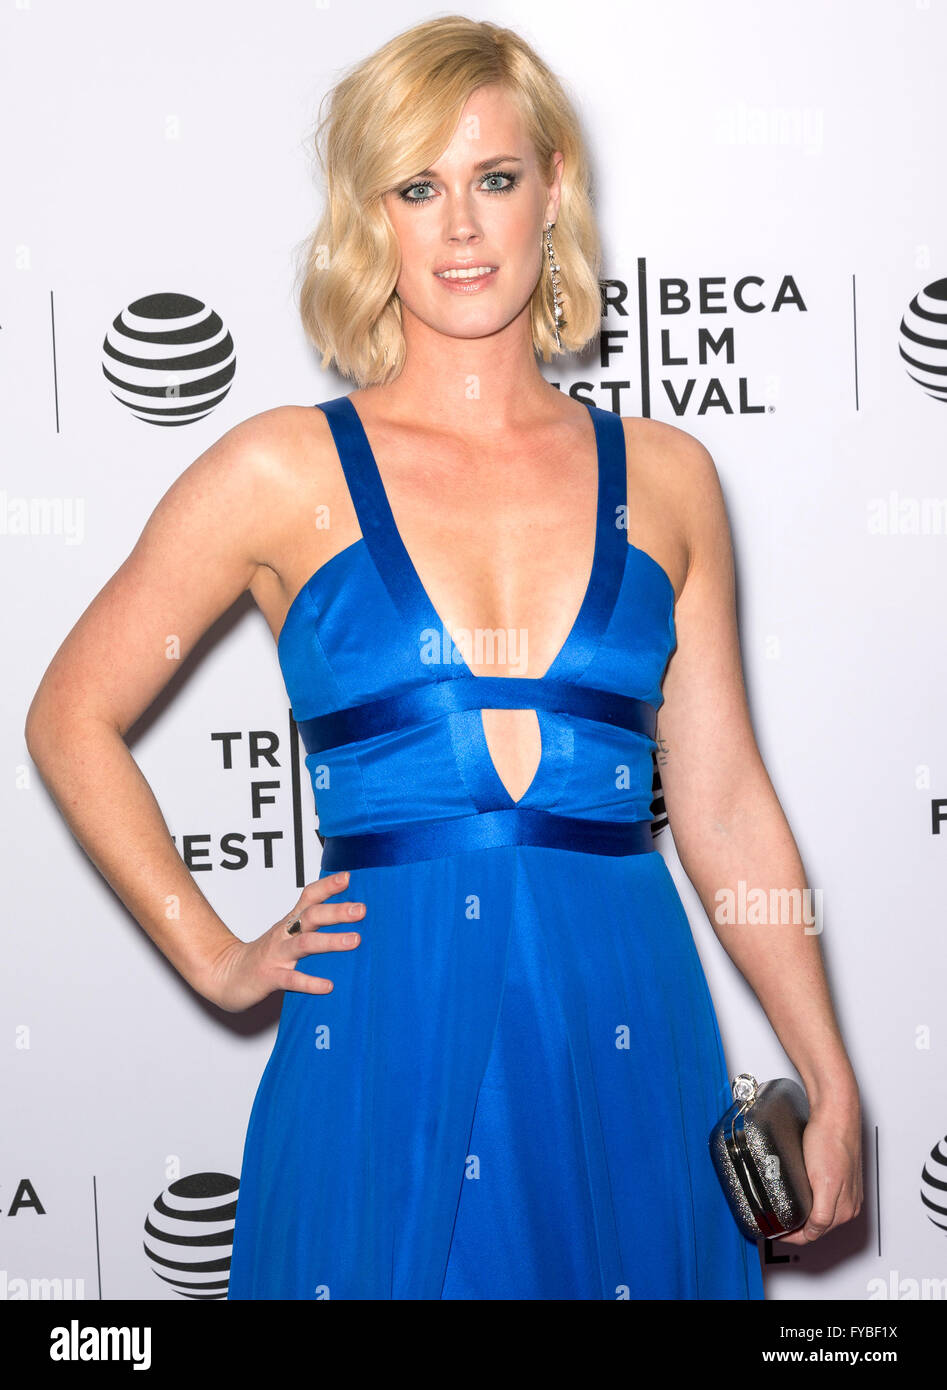 Abigail hawk pictures images photos images77 com